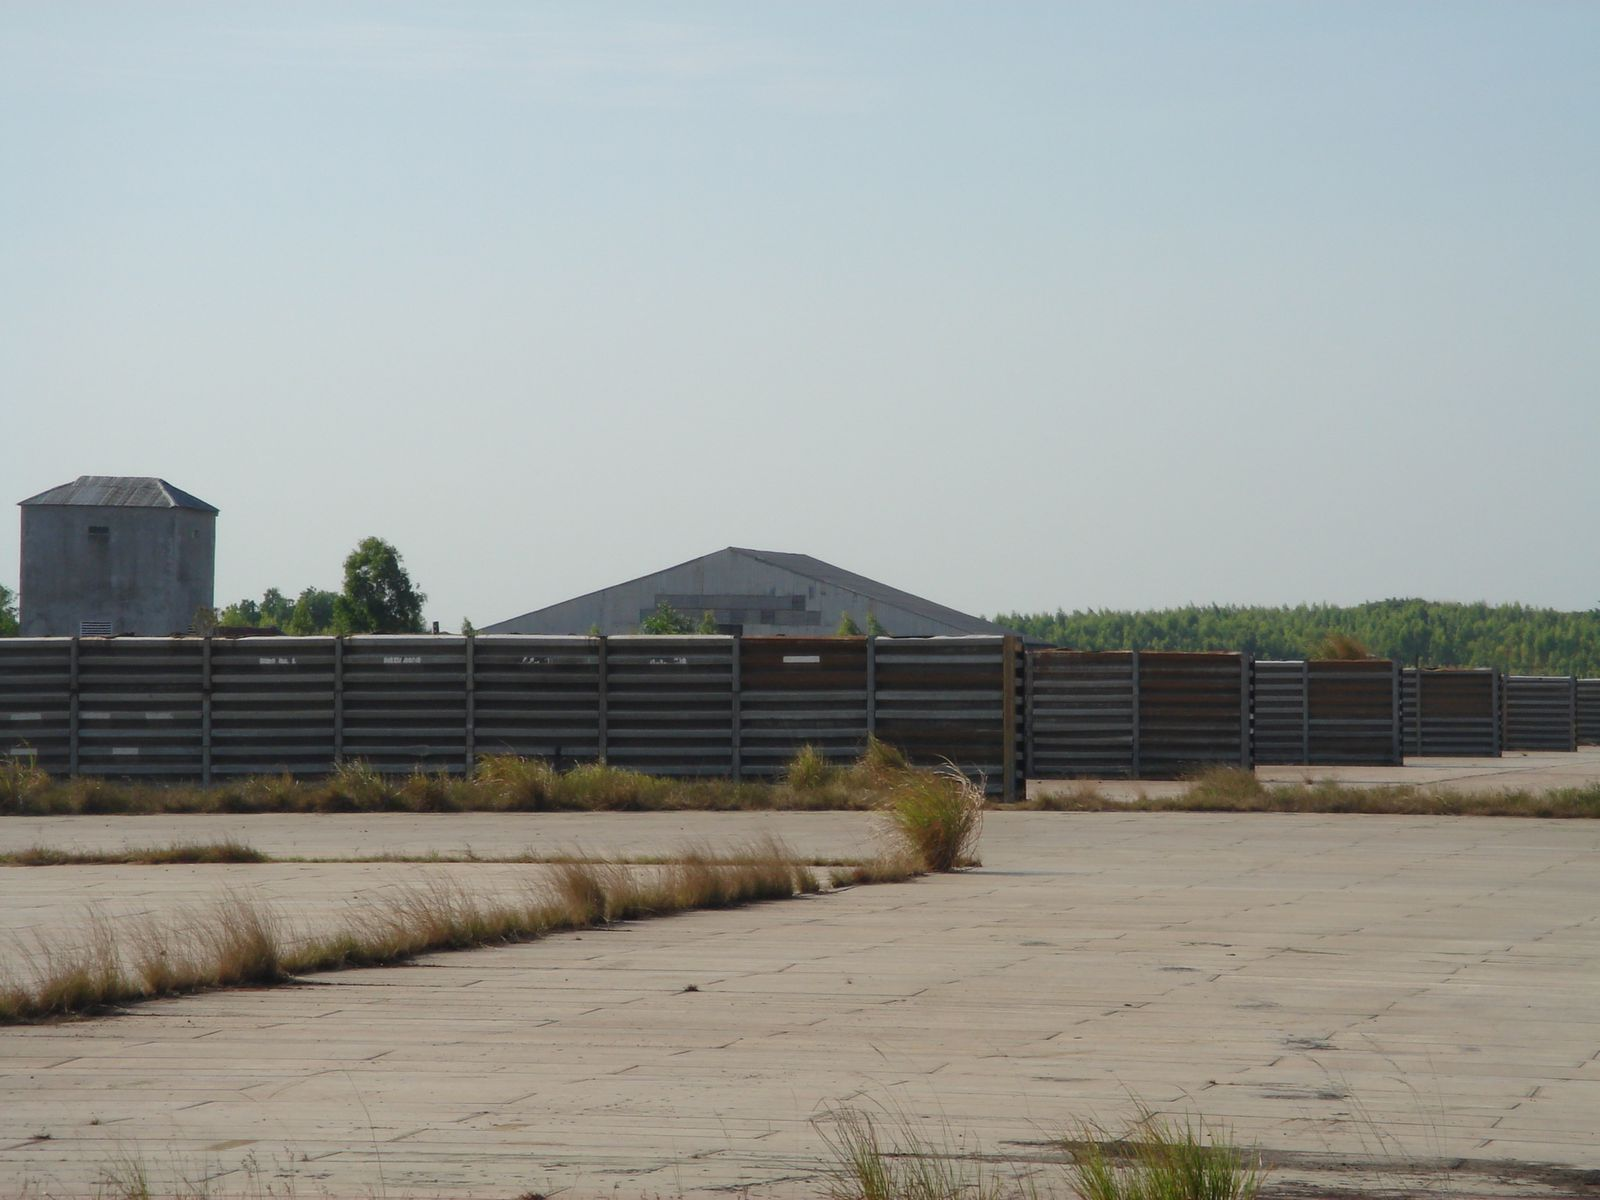 Aircraft revetment. The building to the left may be a recent construction.